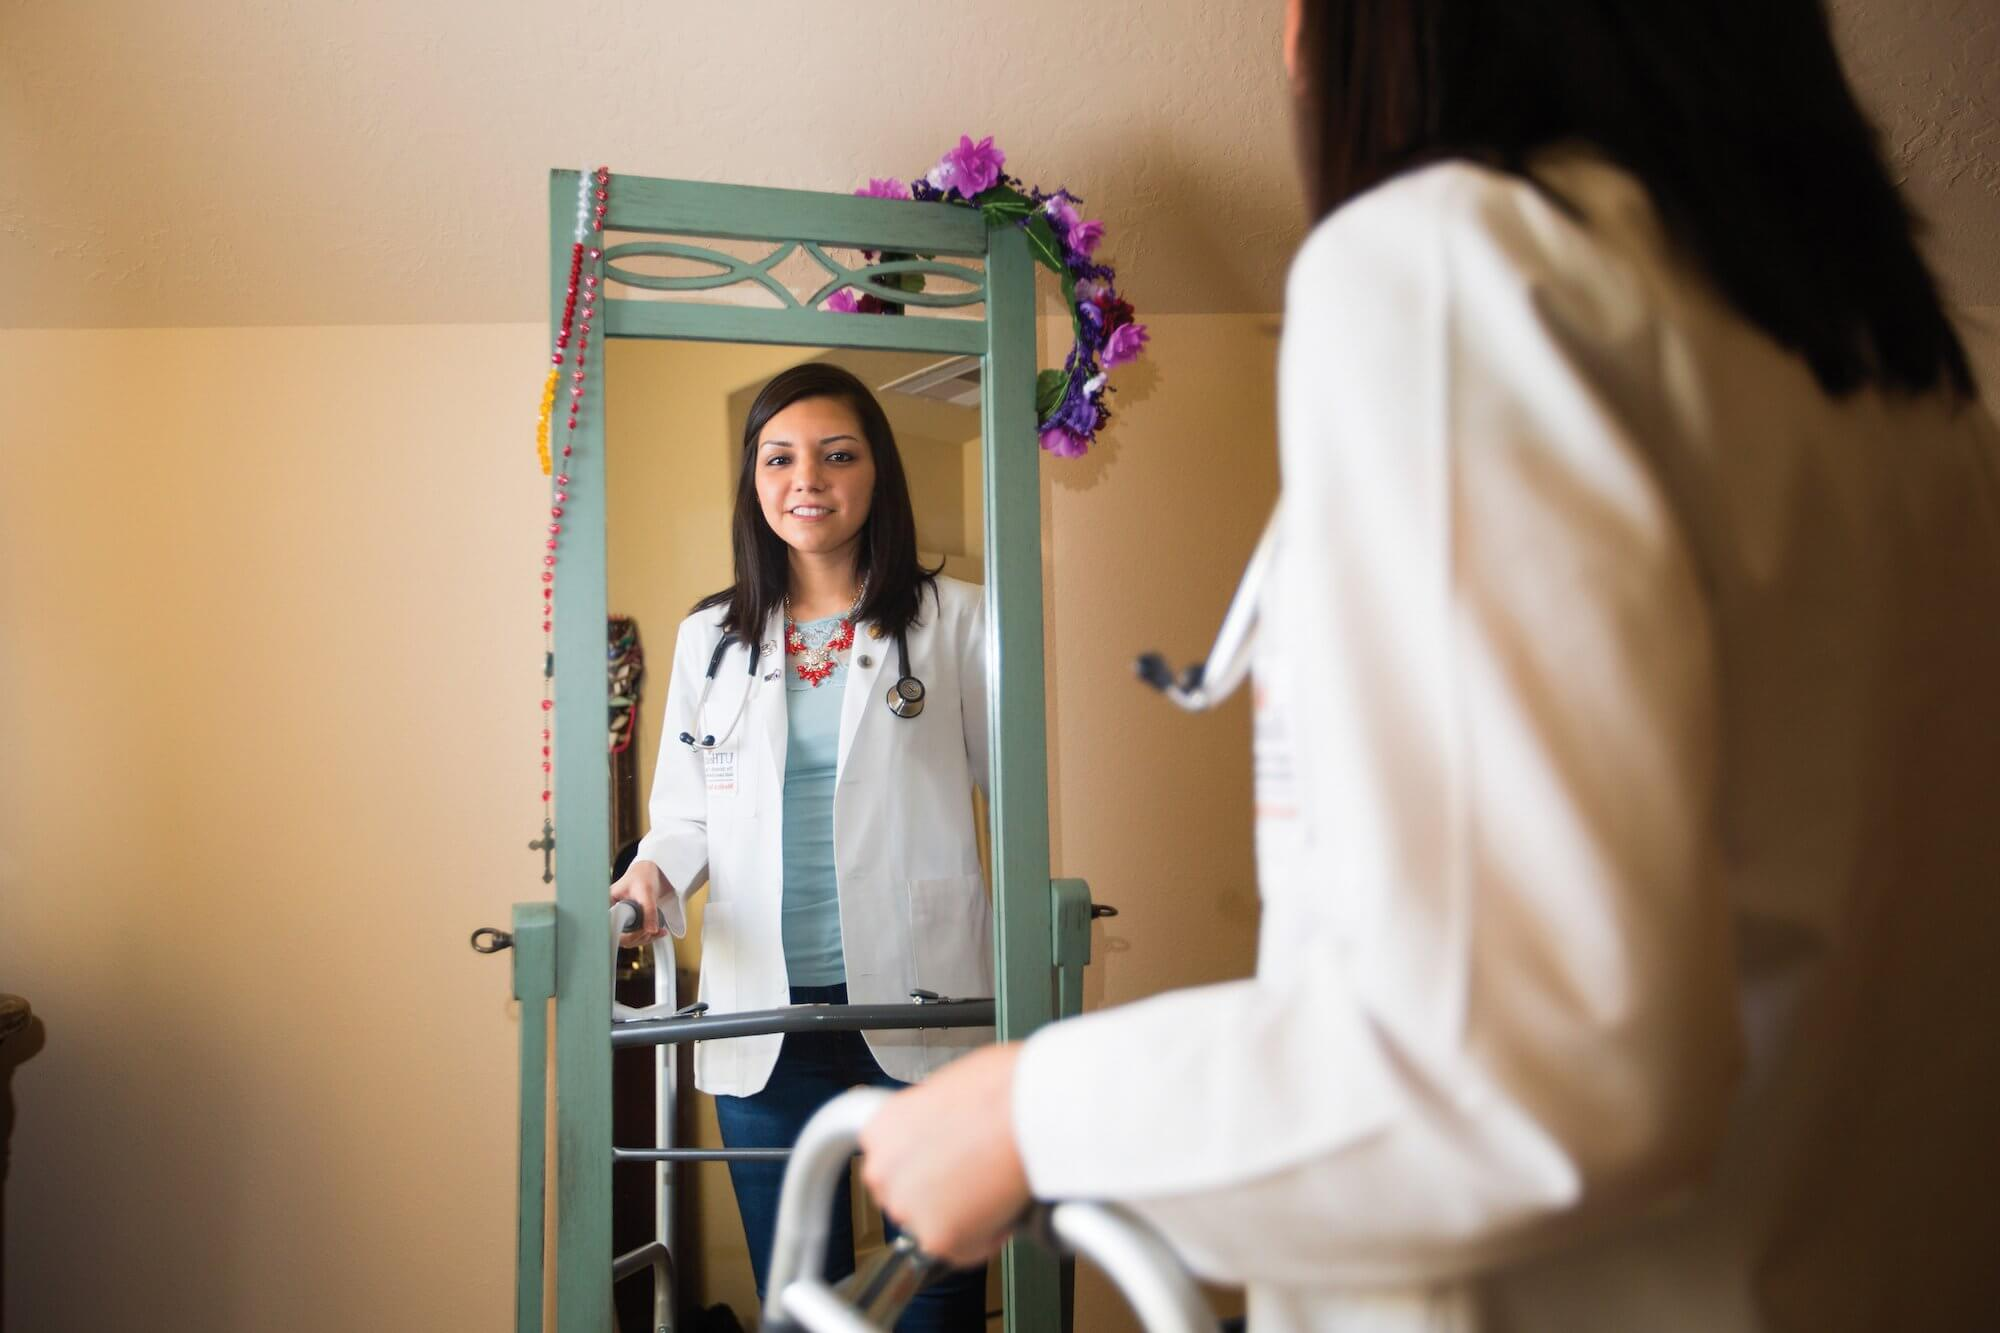 Martinez, in her white coat, takes in her reflection in a full-length mirror.